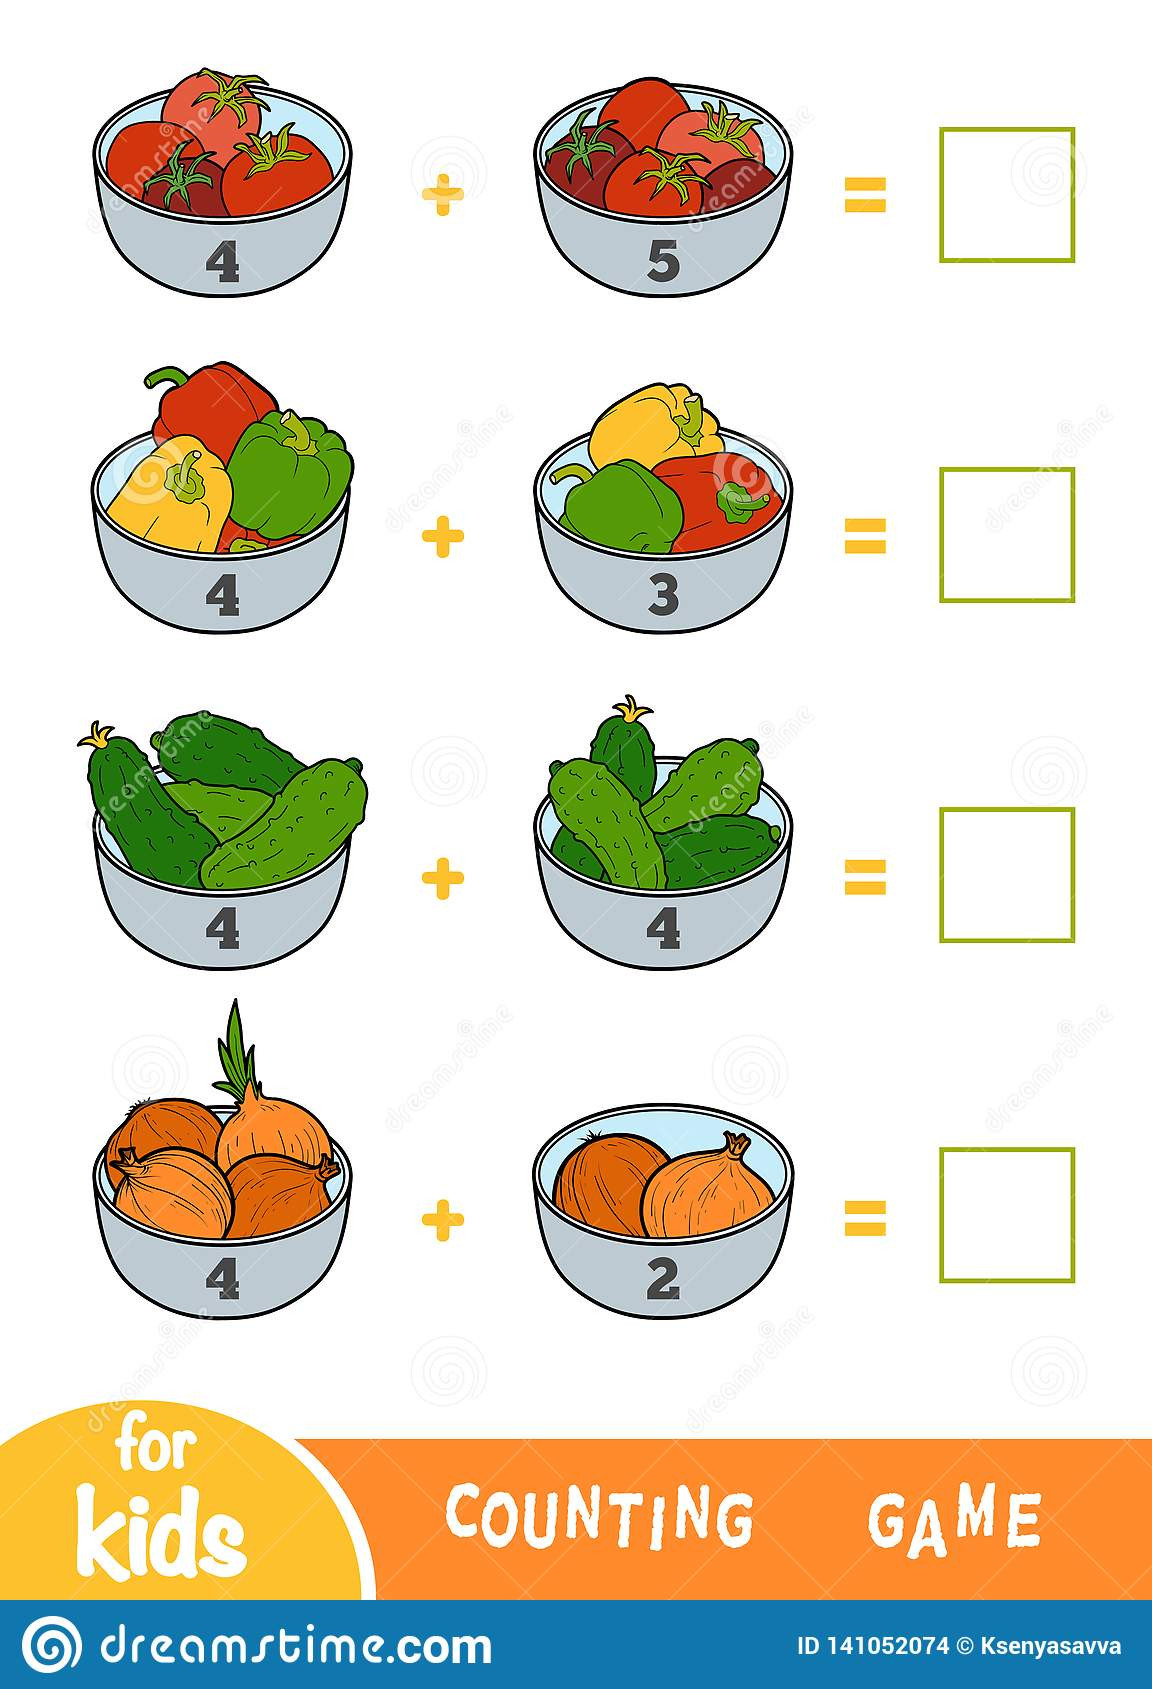 Preschool Fruits and Vegetables Worksheets Counting Game for Preschool Children Addition Worksheets